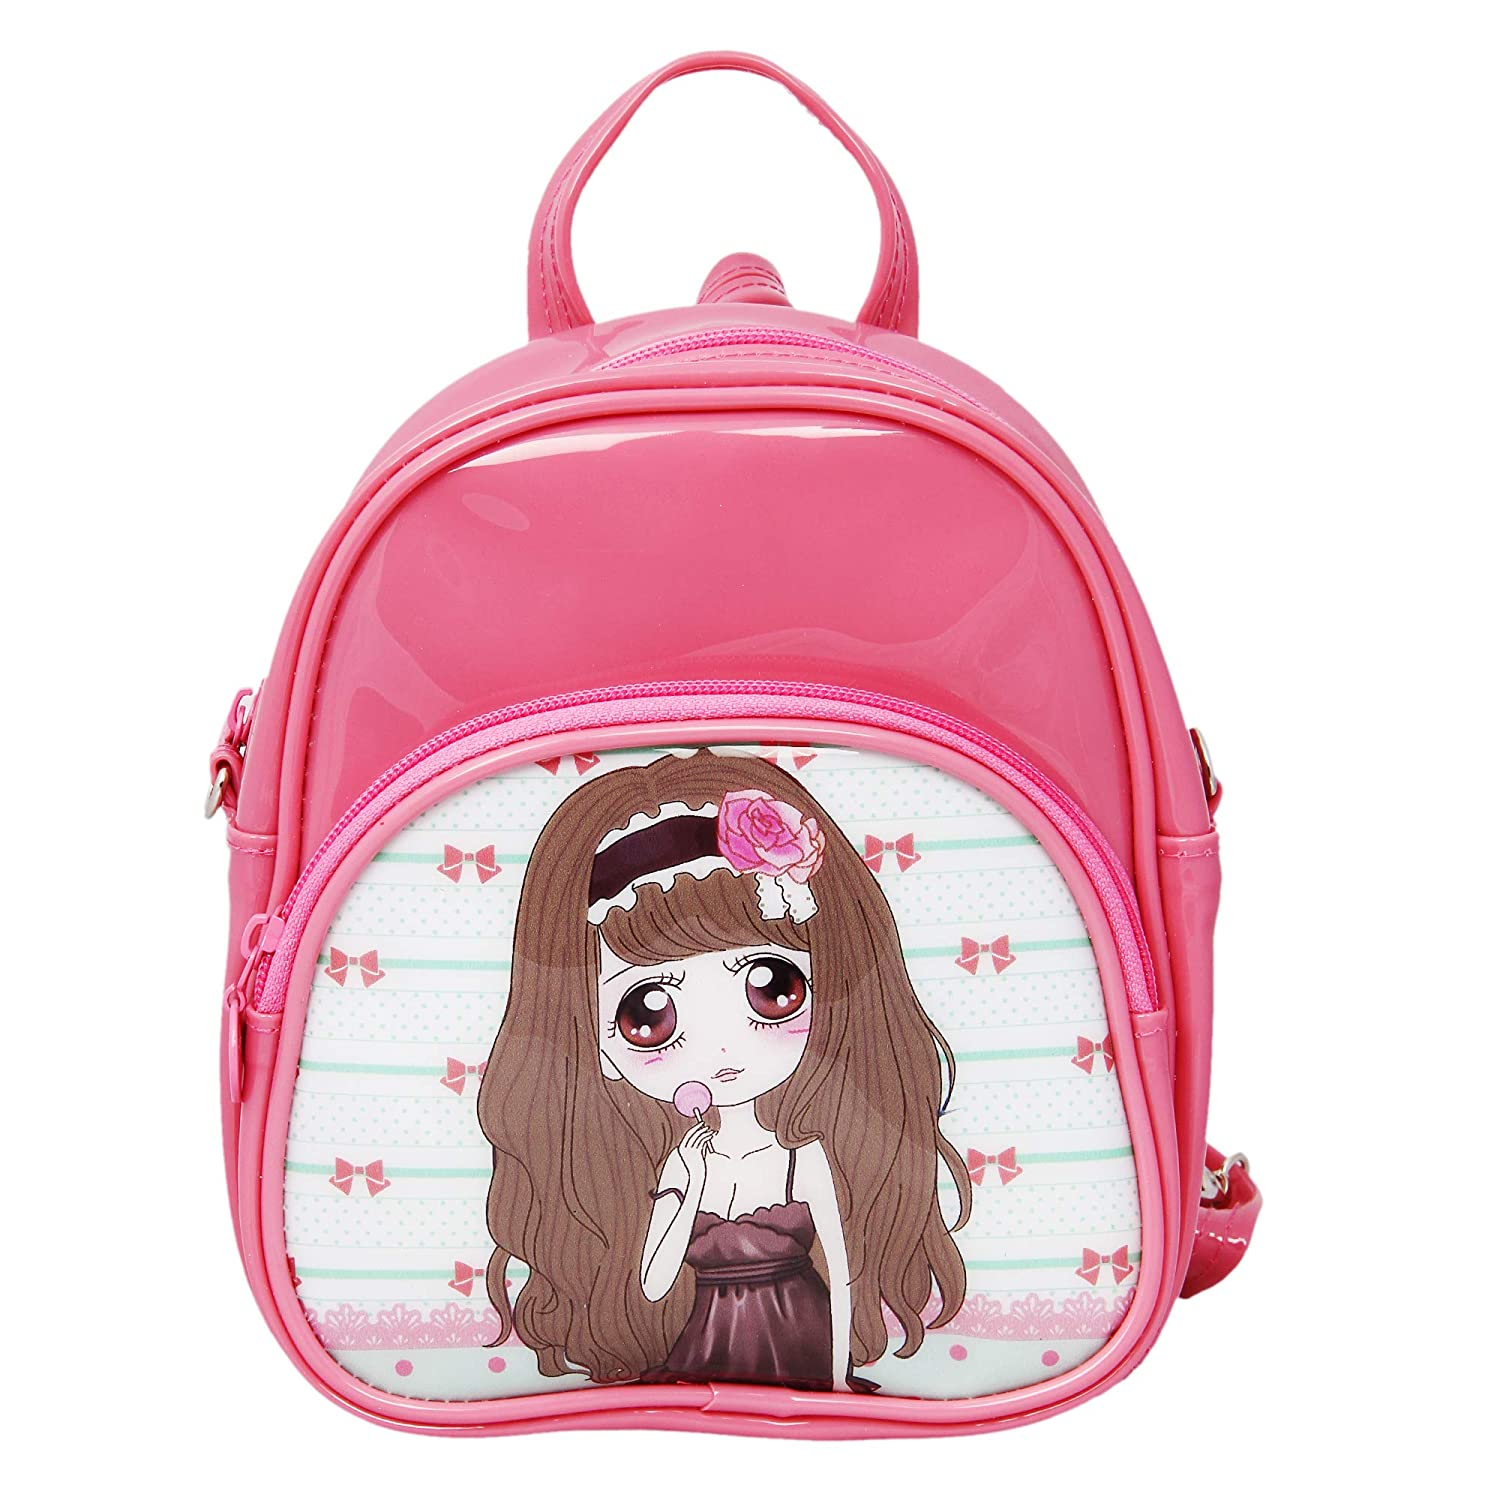 Buy Bagmire Trendy 3 Liters Peach Backpack Cum Sling Bag Online at Low  Prices in India - Amazon.in 850cce7336b9e